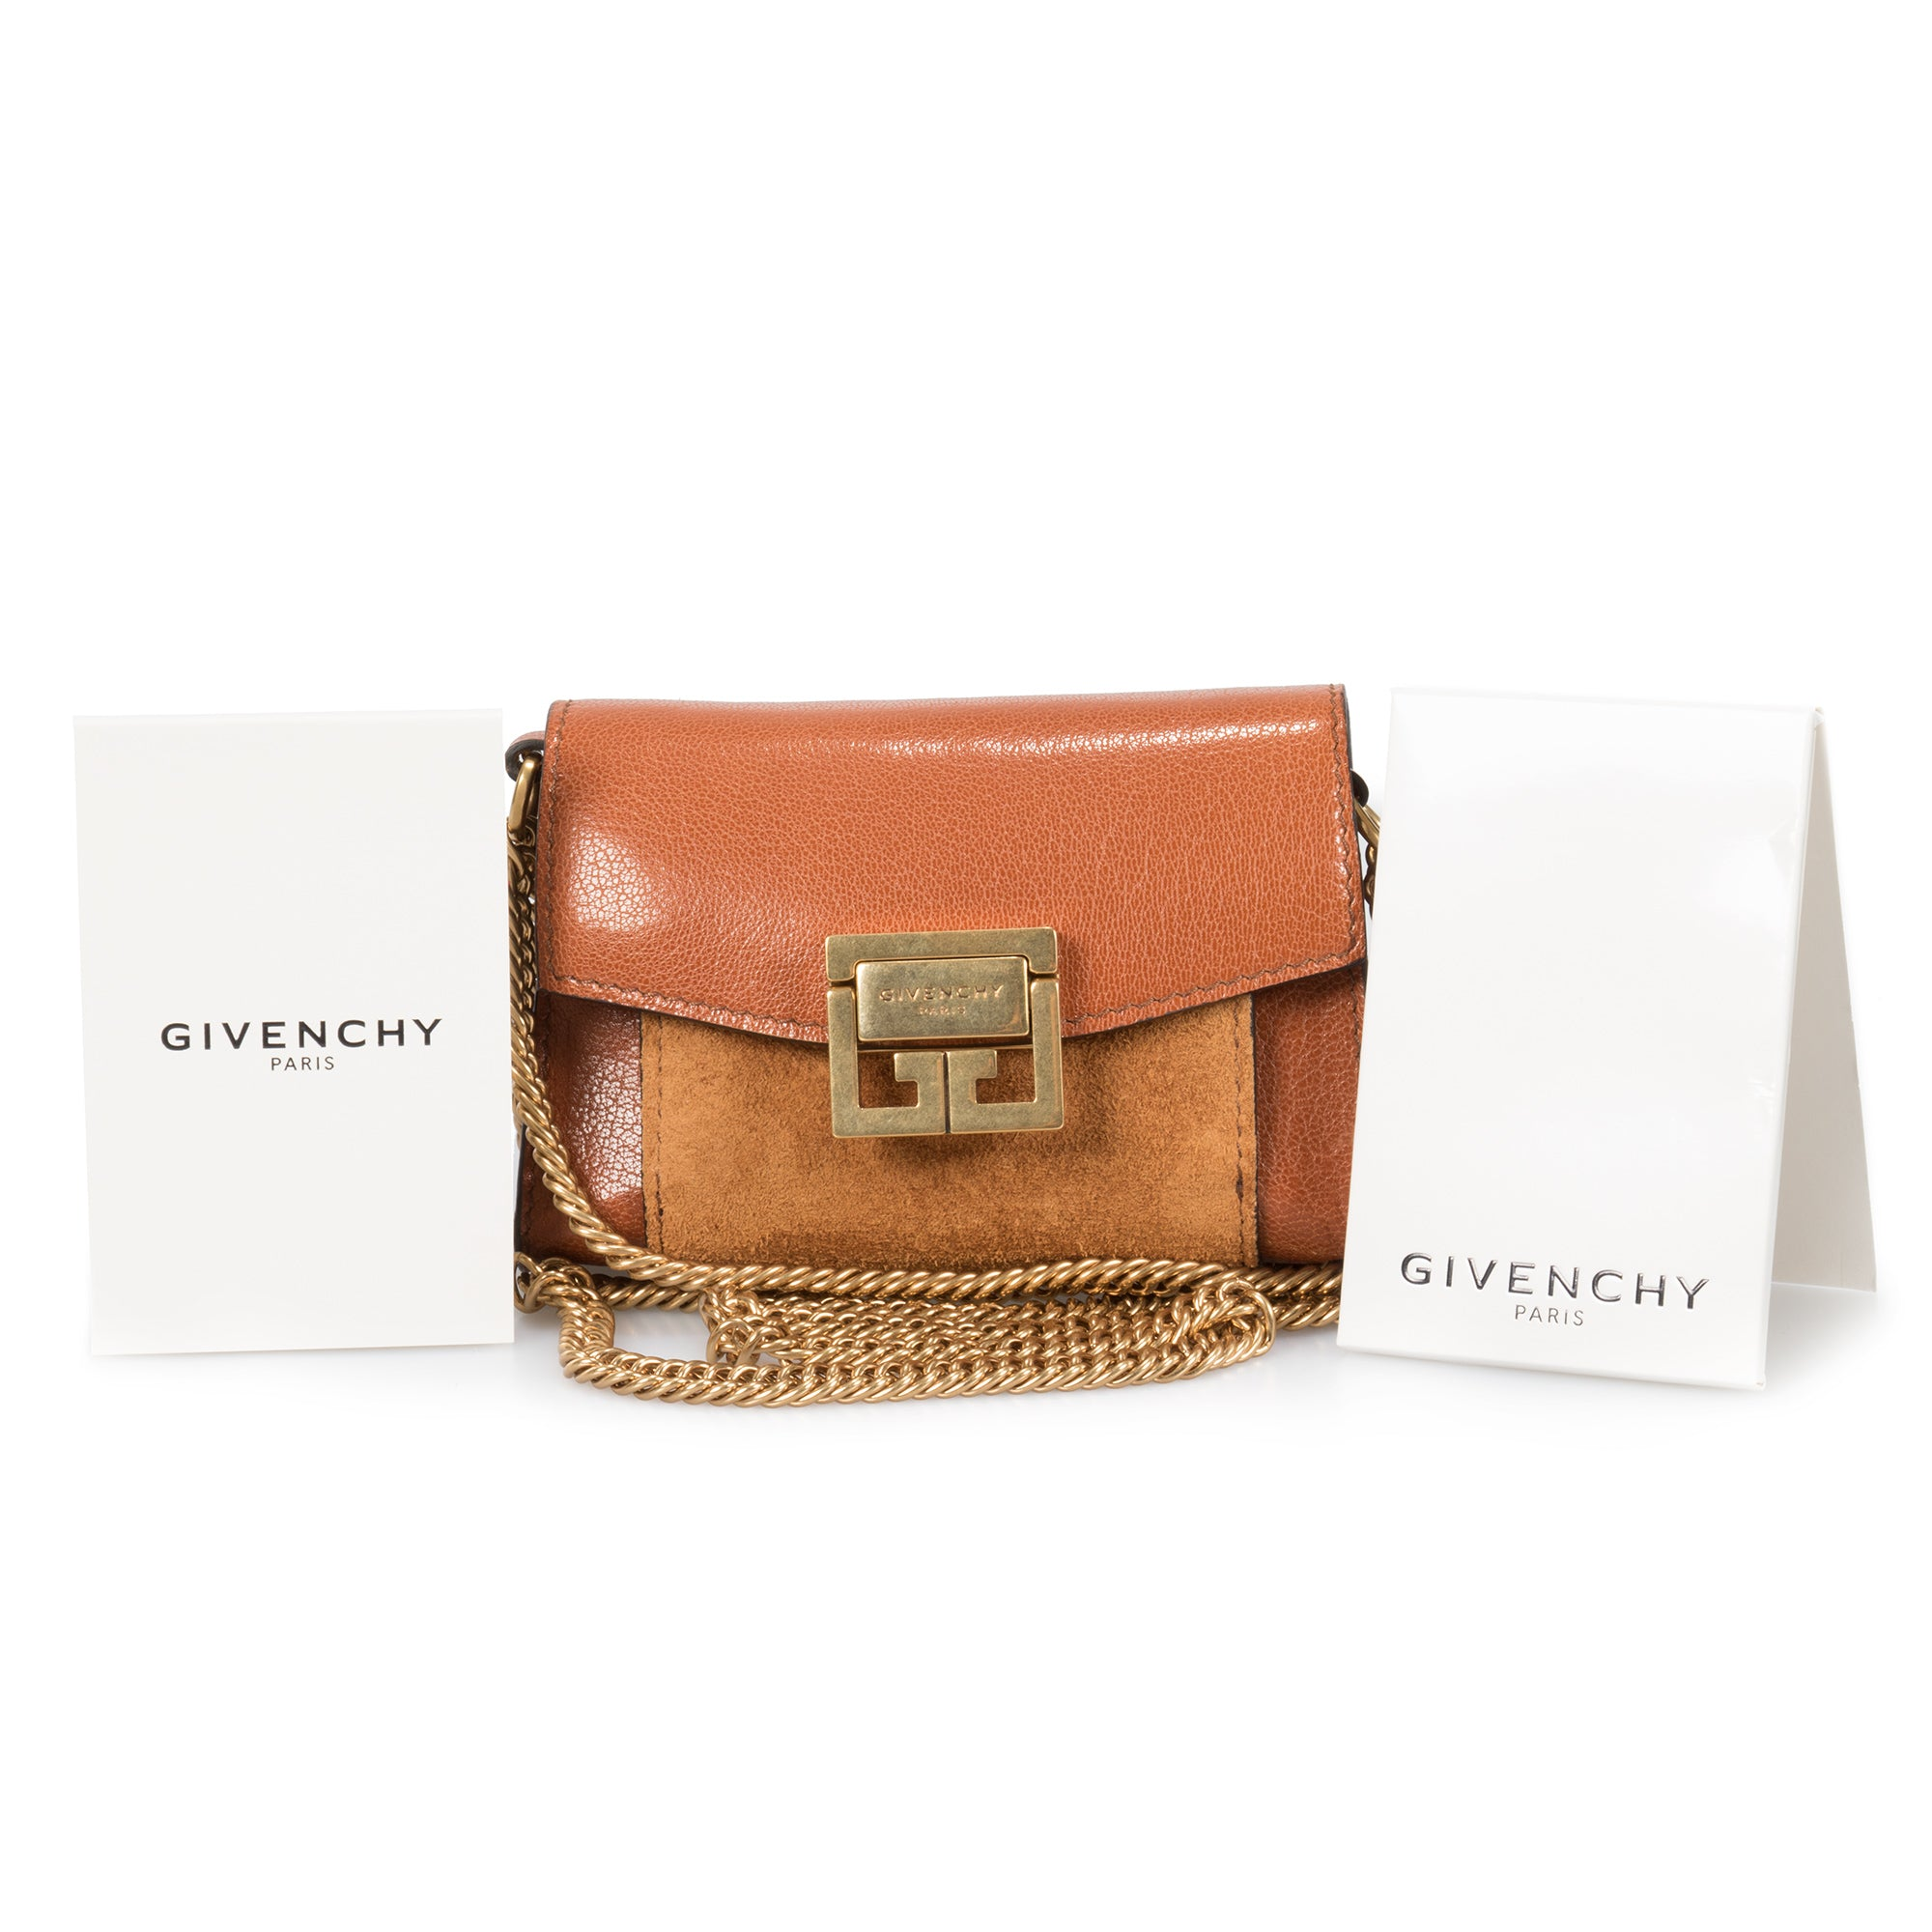 Givenchy GV3 Nano Bag in Navy Leather & Suede